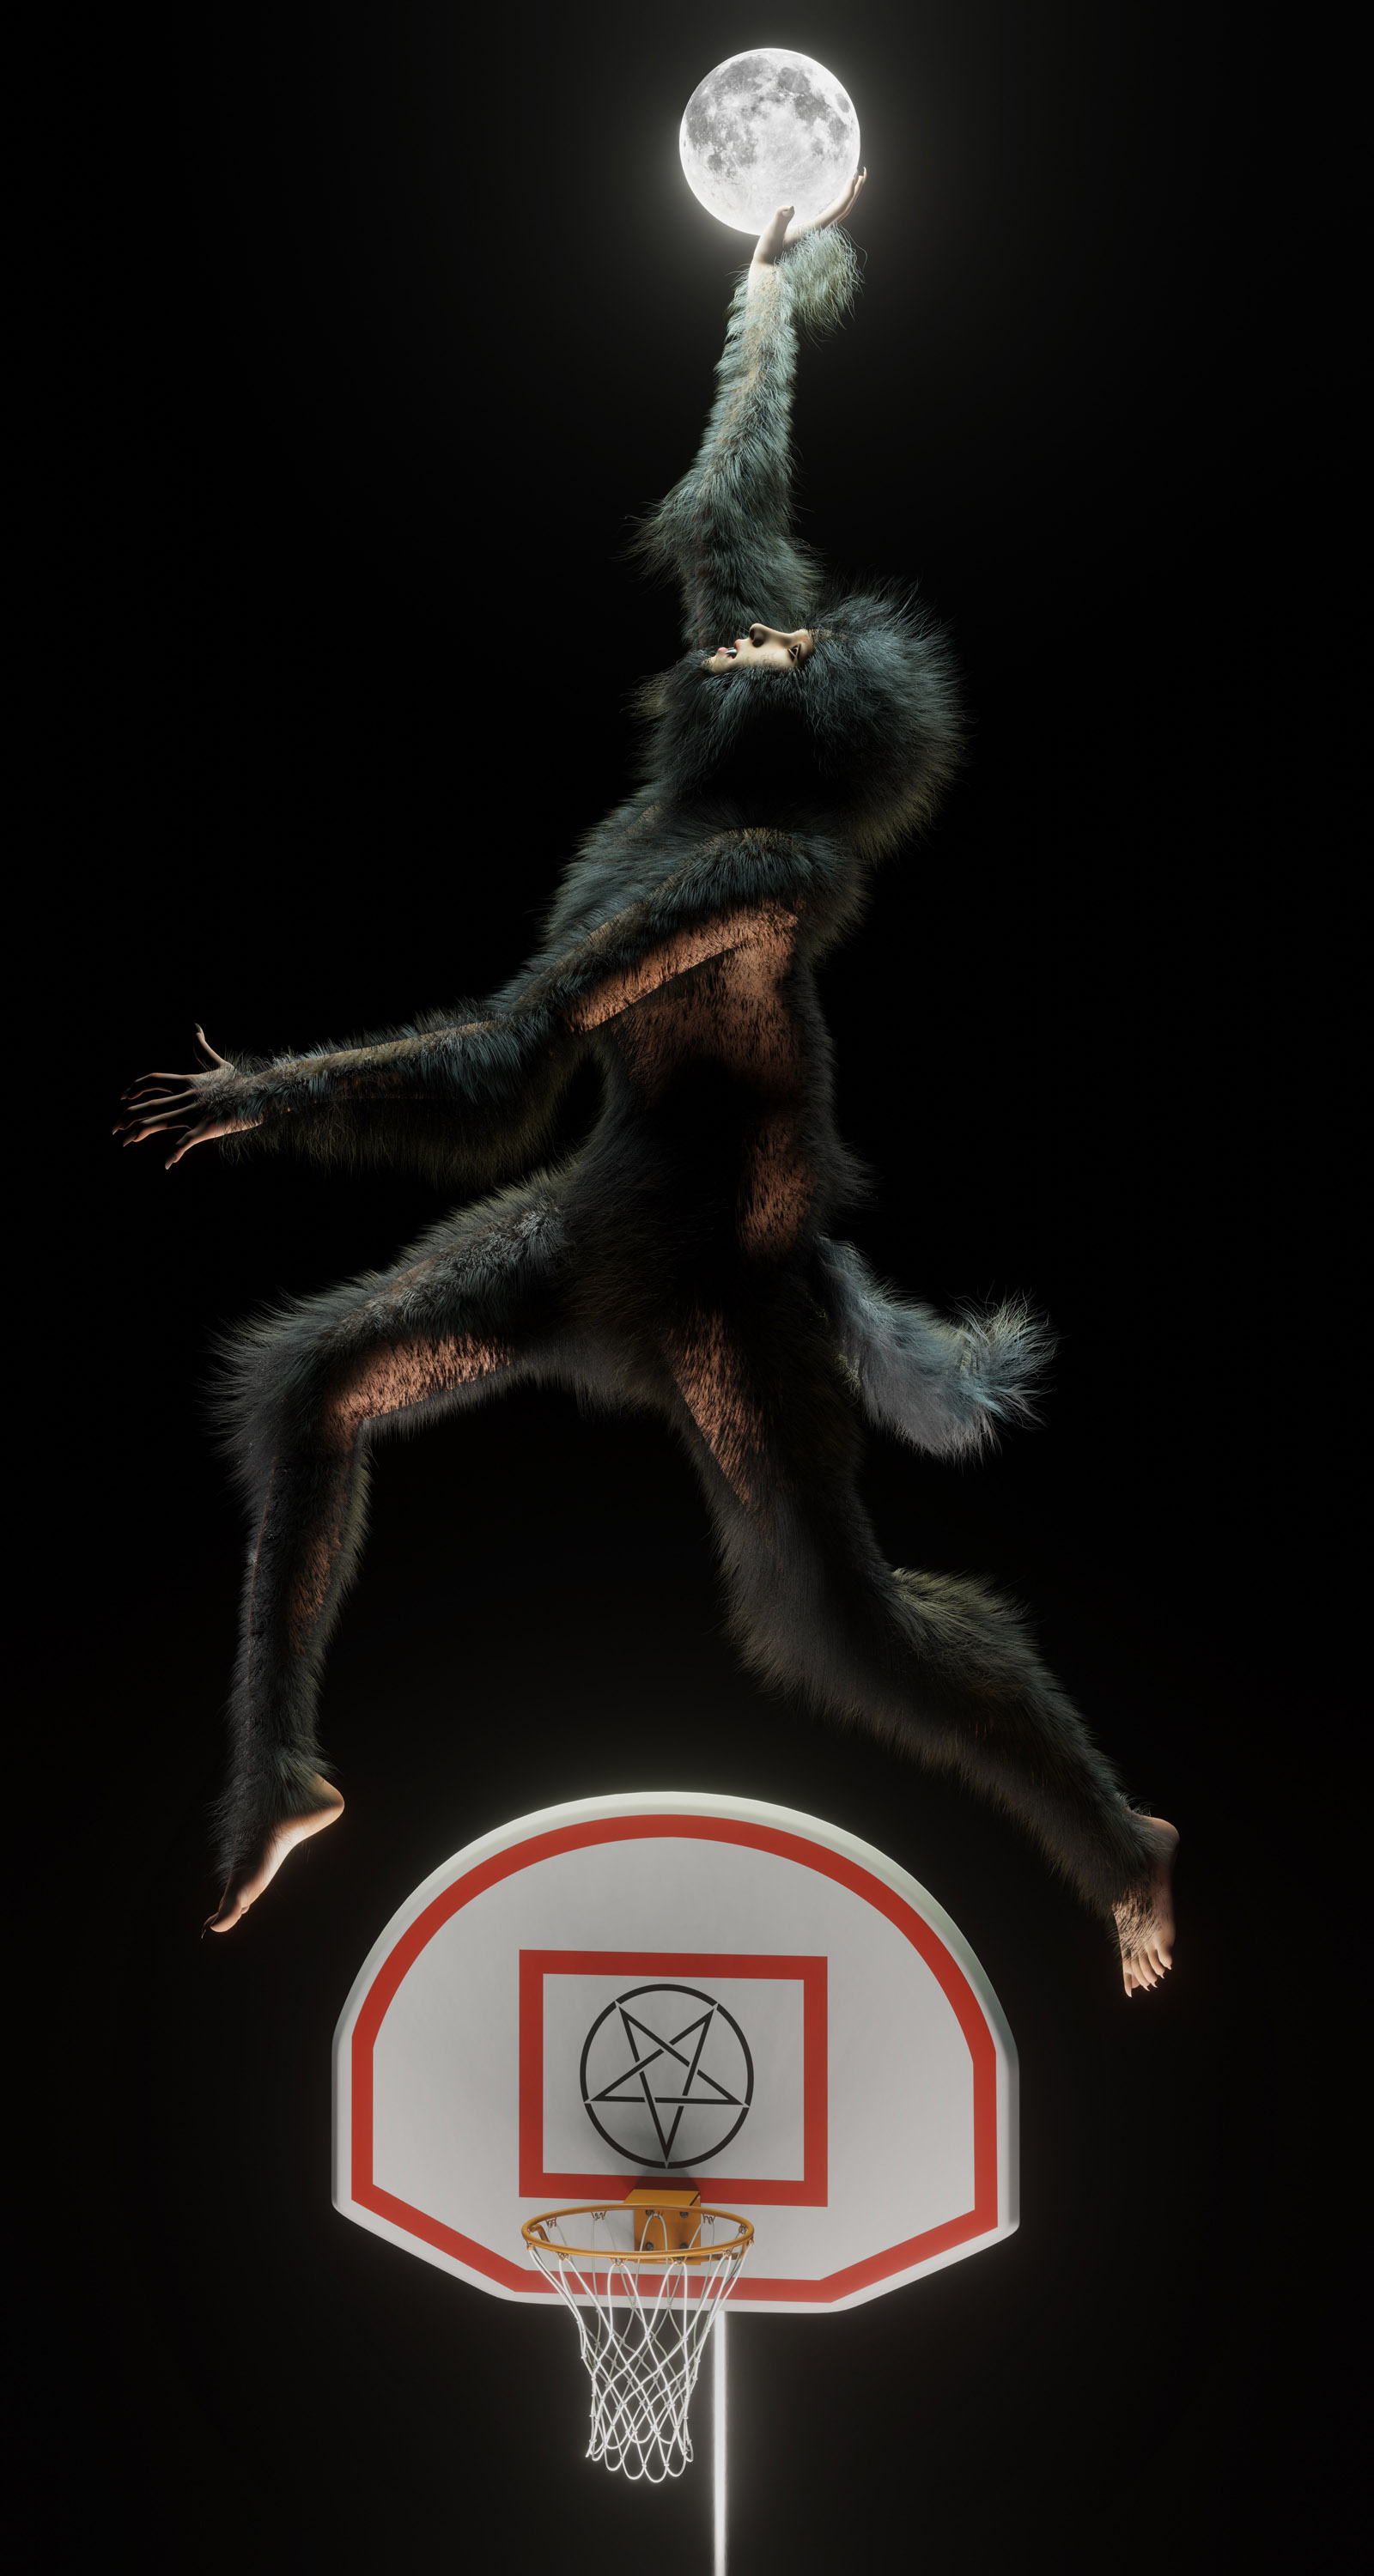 Furry man floating against a black background holding the moon.